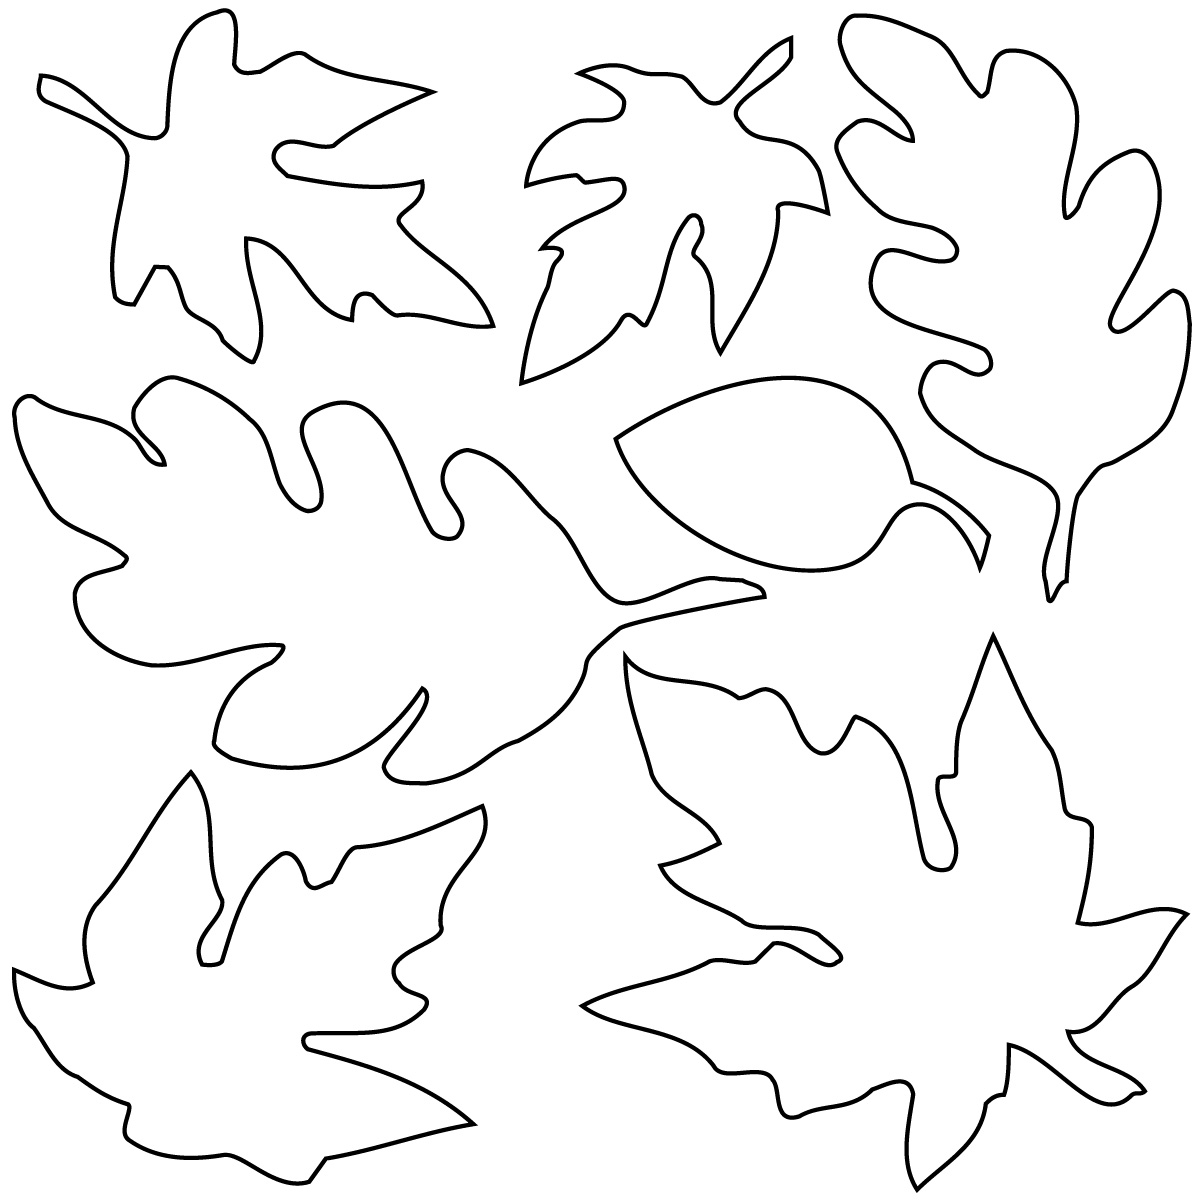 Best fall leaves clip art black and white 21680 - Leaves paintings and drawings ...